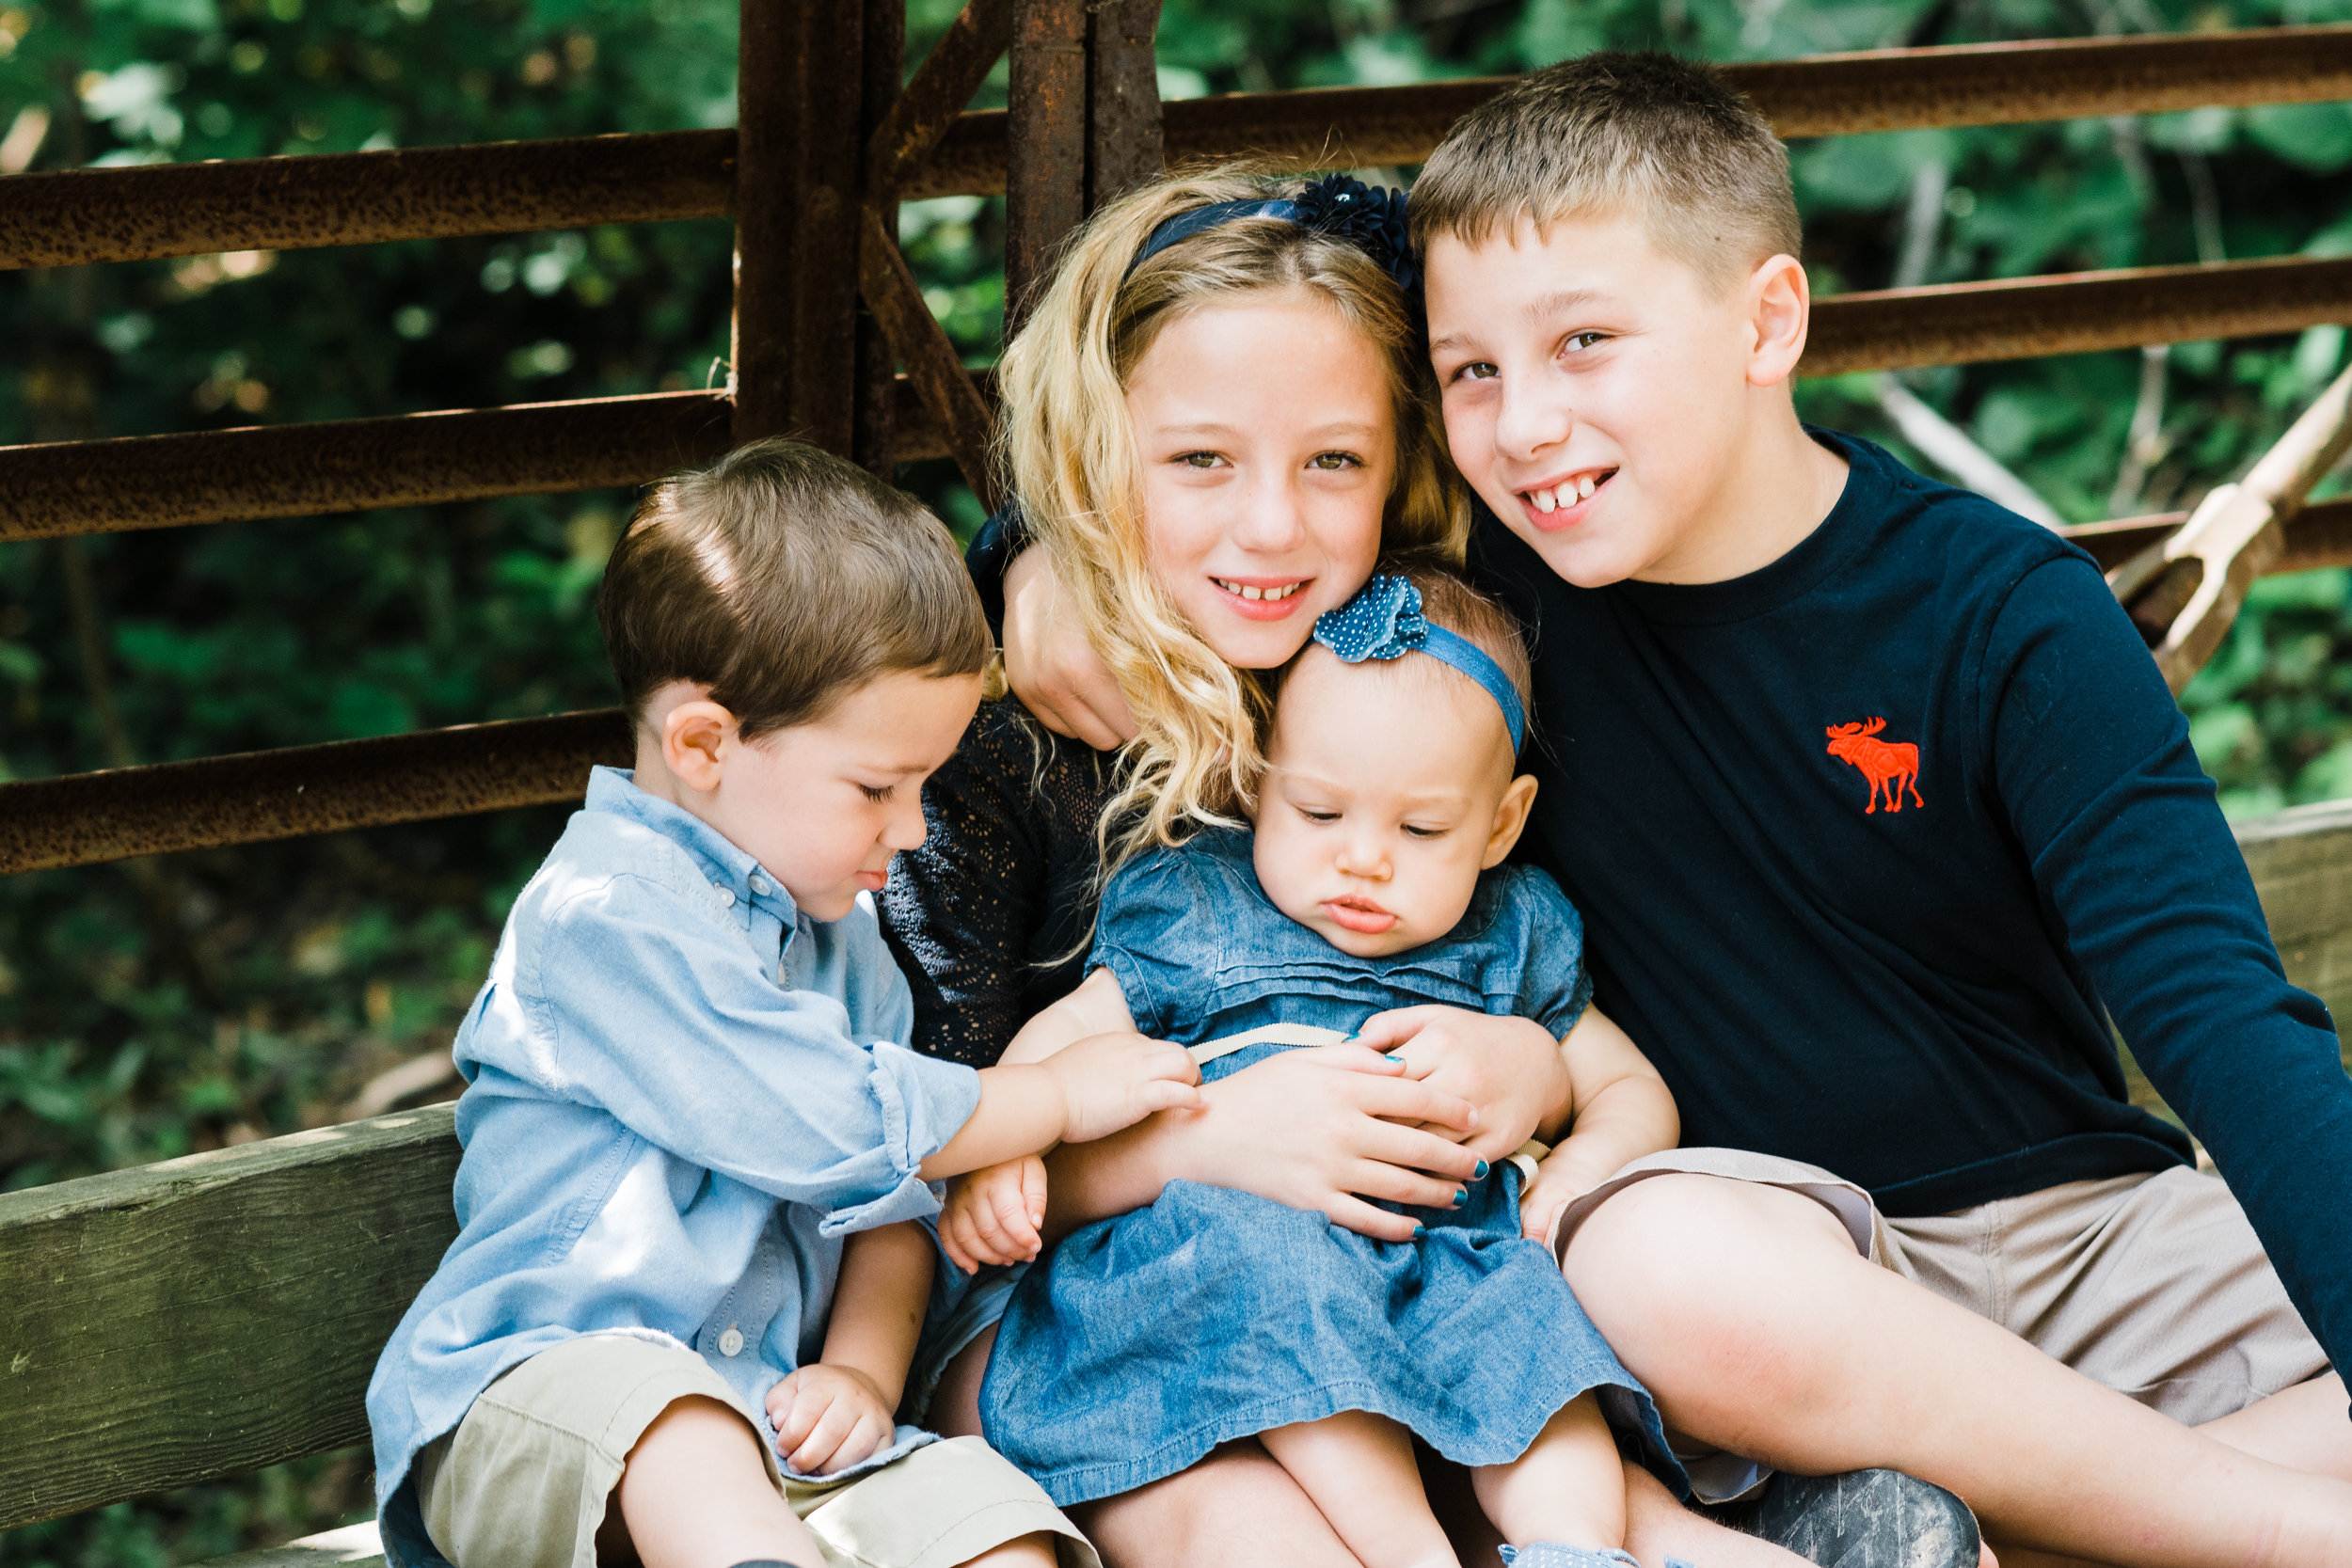 Family Portraits at Willow Creek | Iowa City Children's Photographer